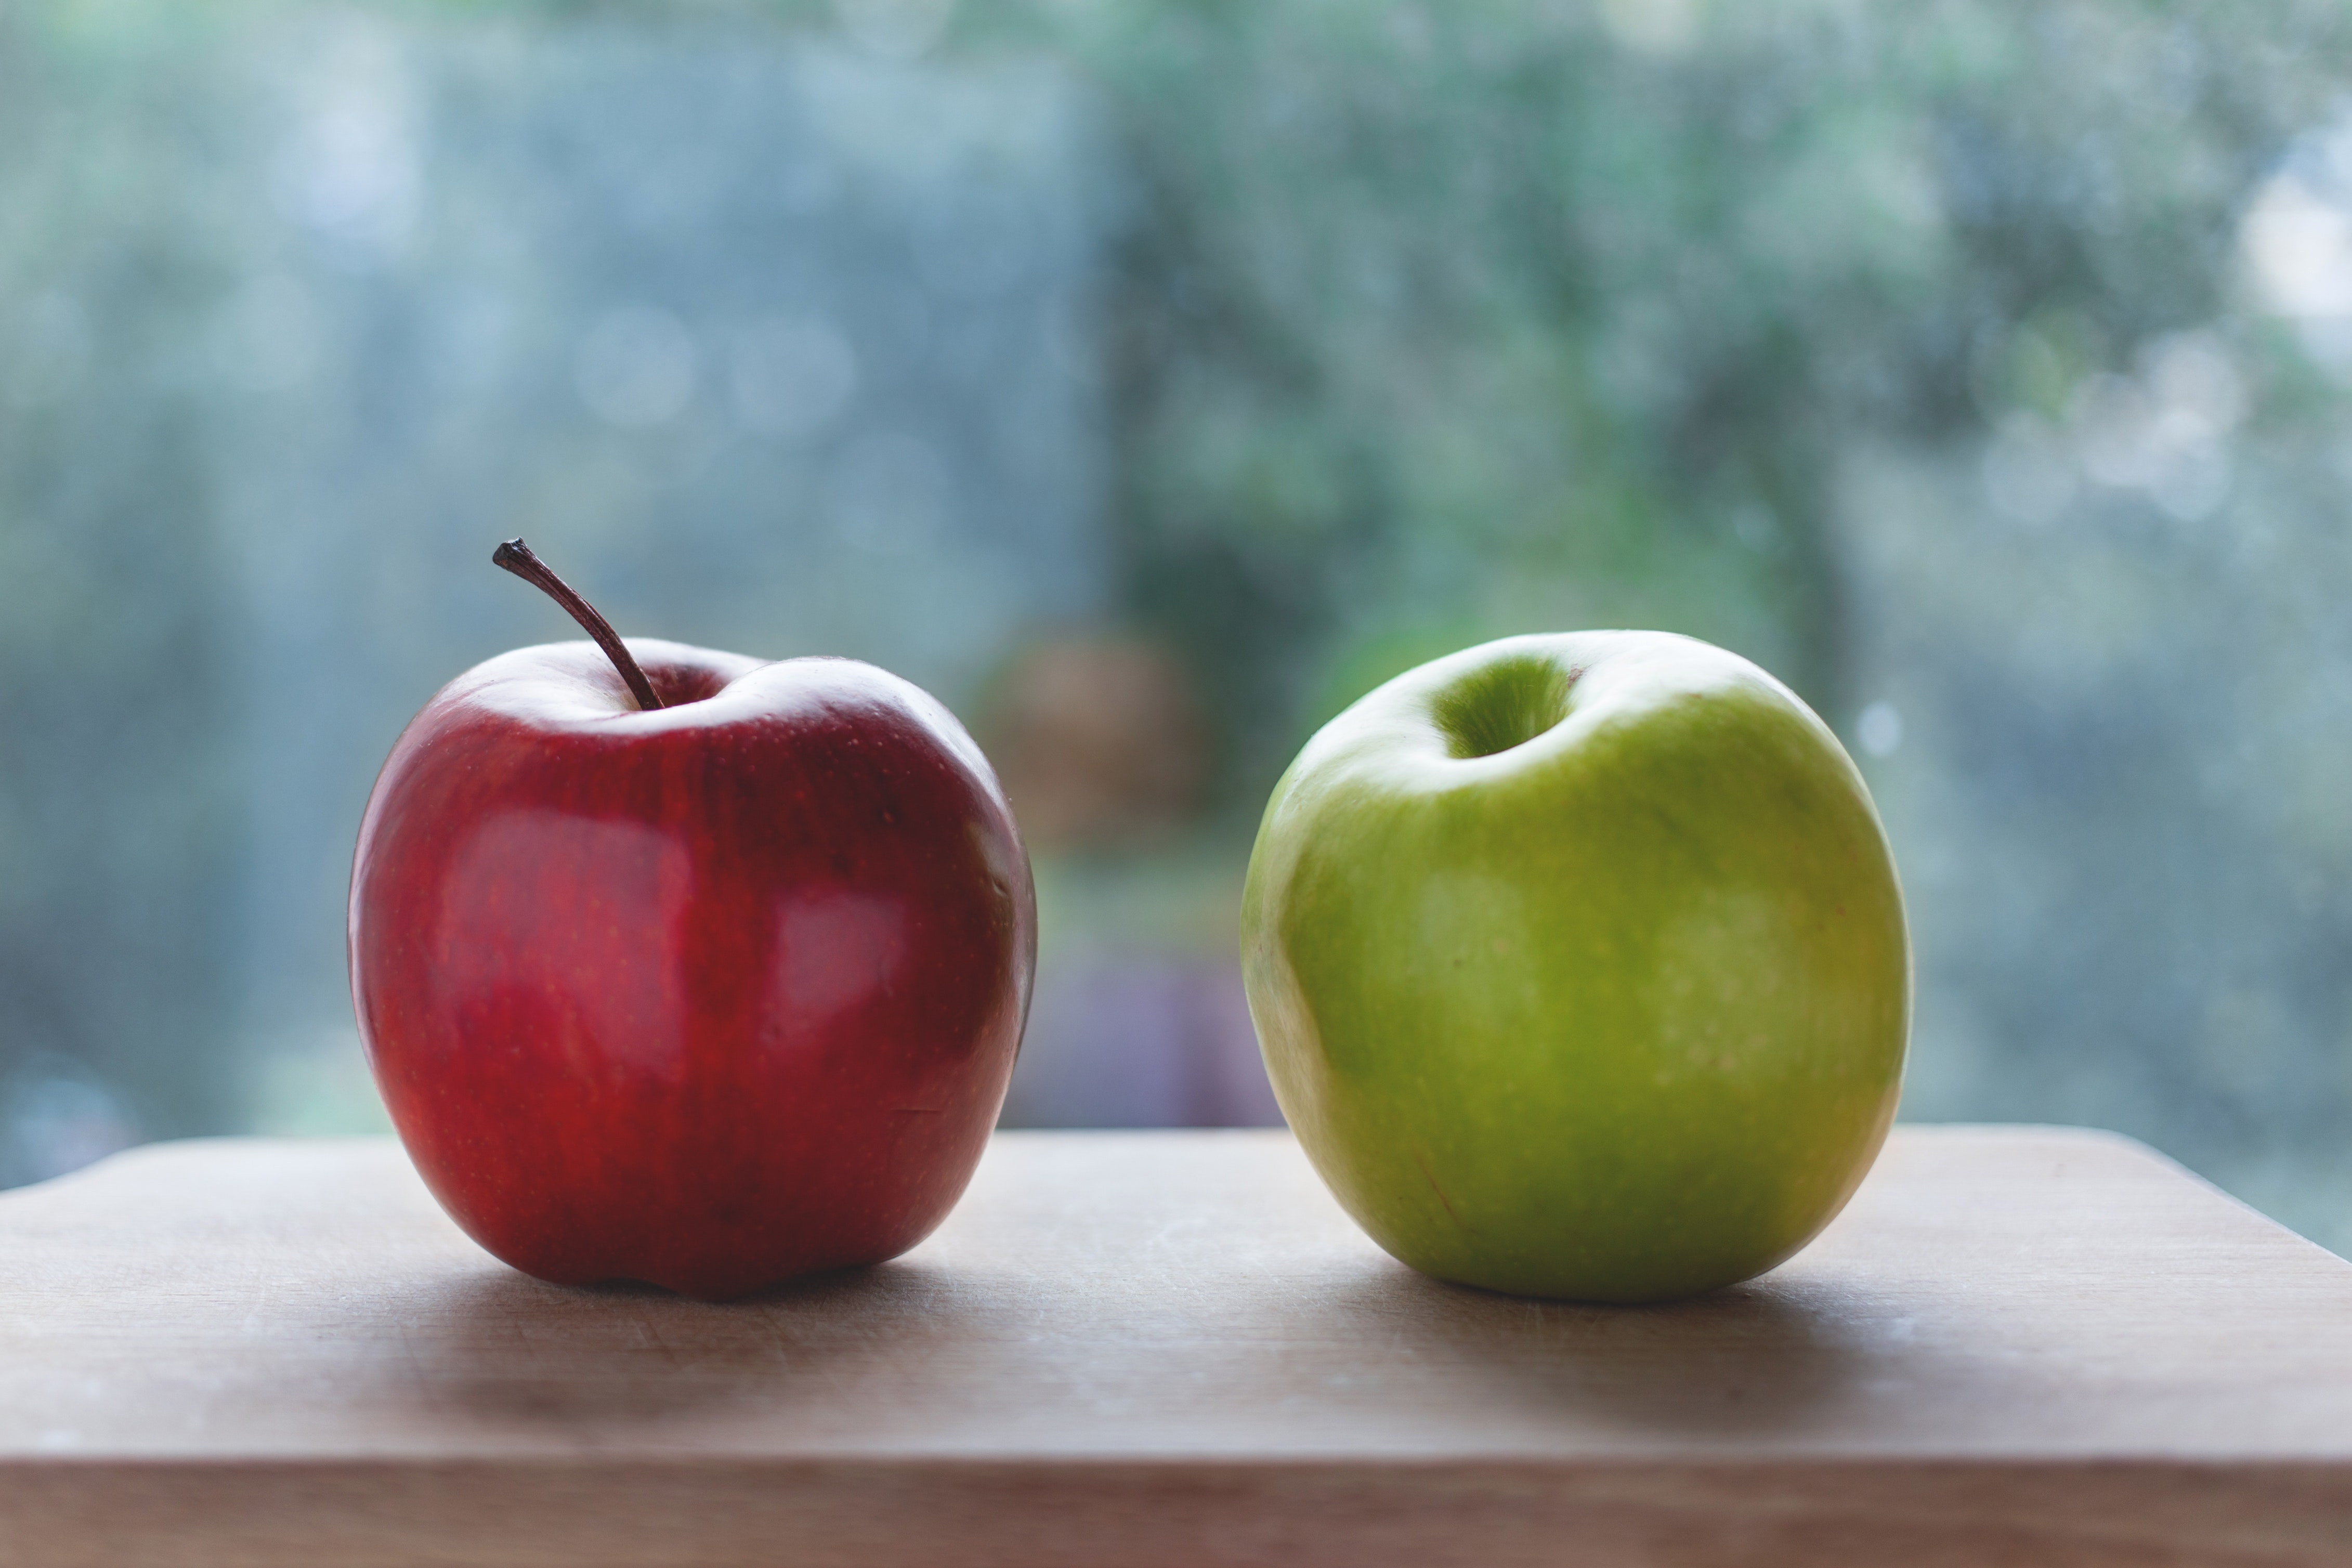 Red apple and green apple